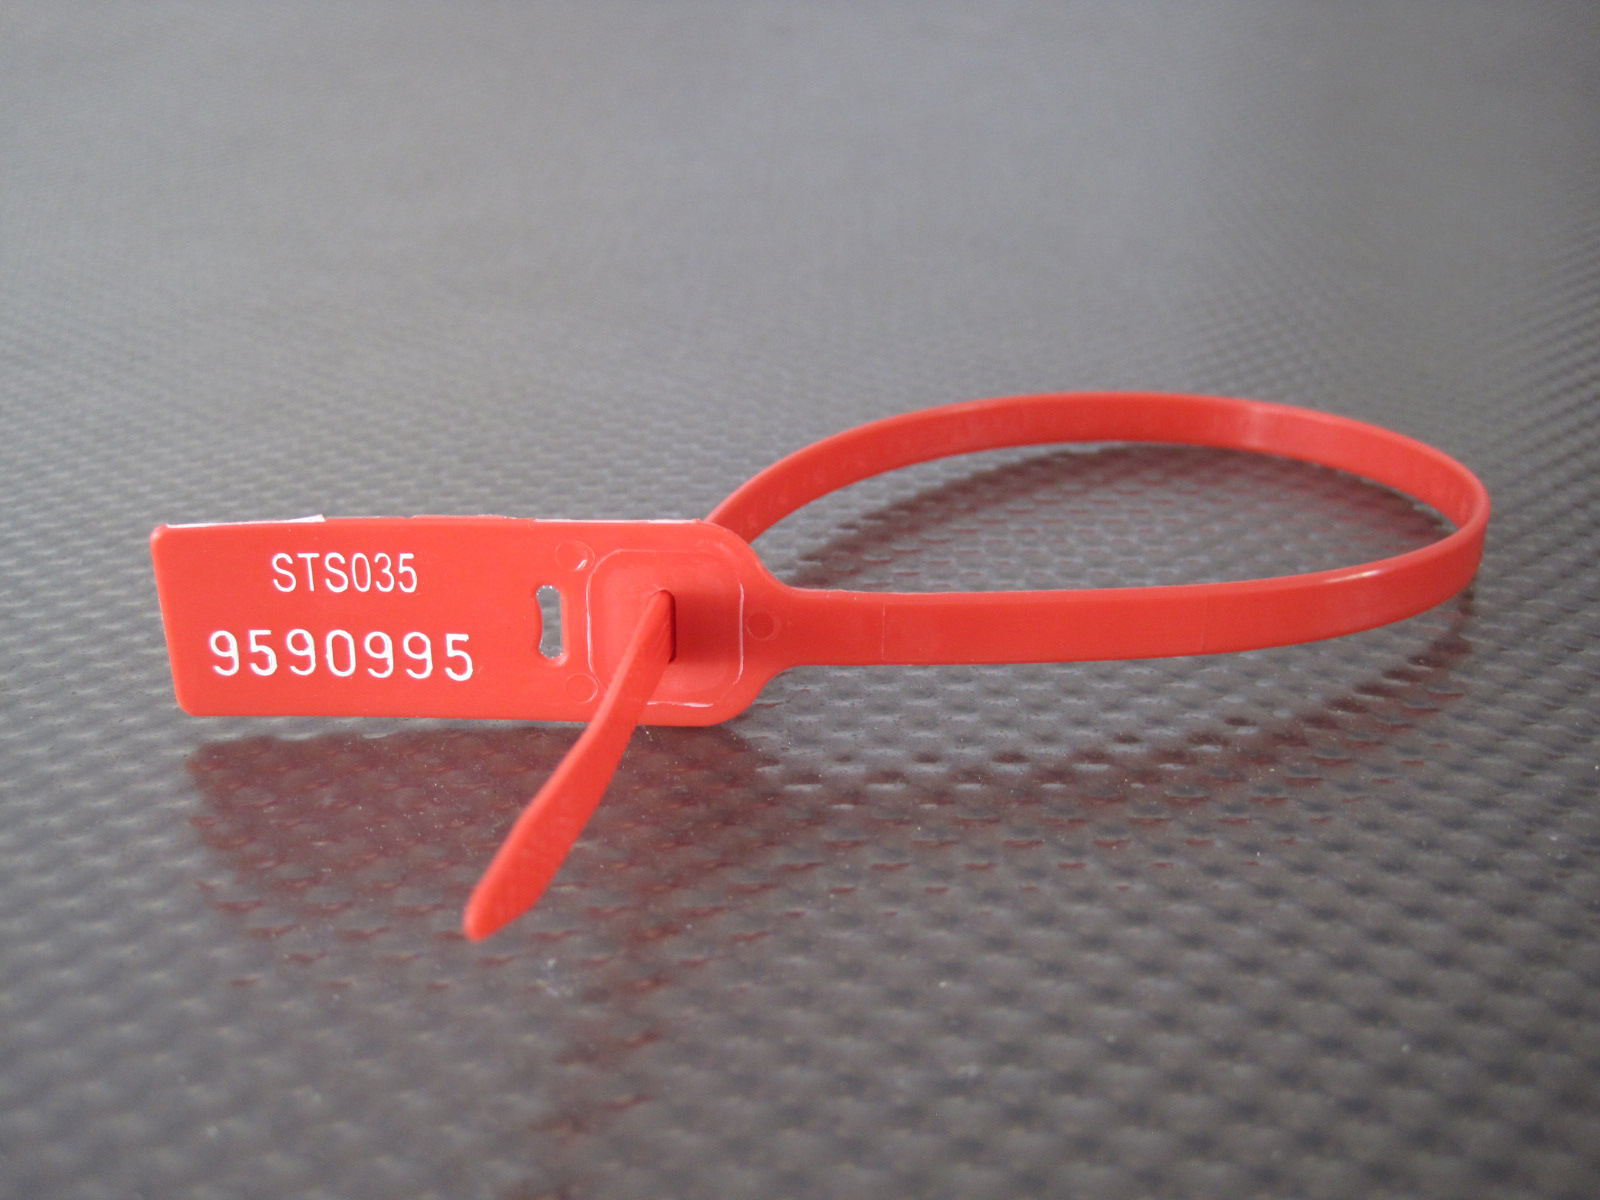 locksecure-red-pulltight-seal